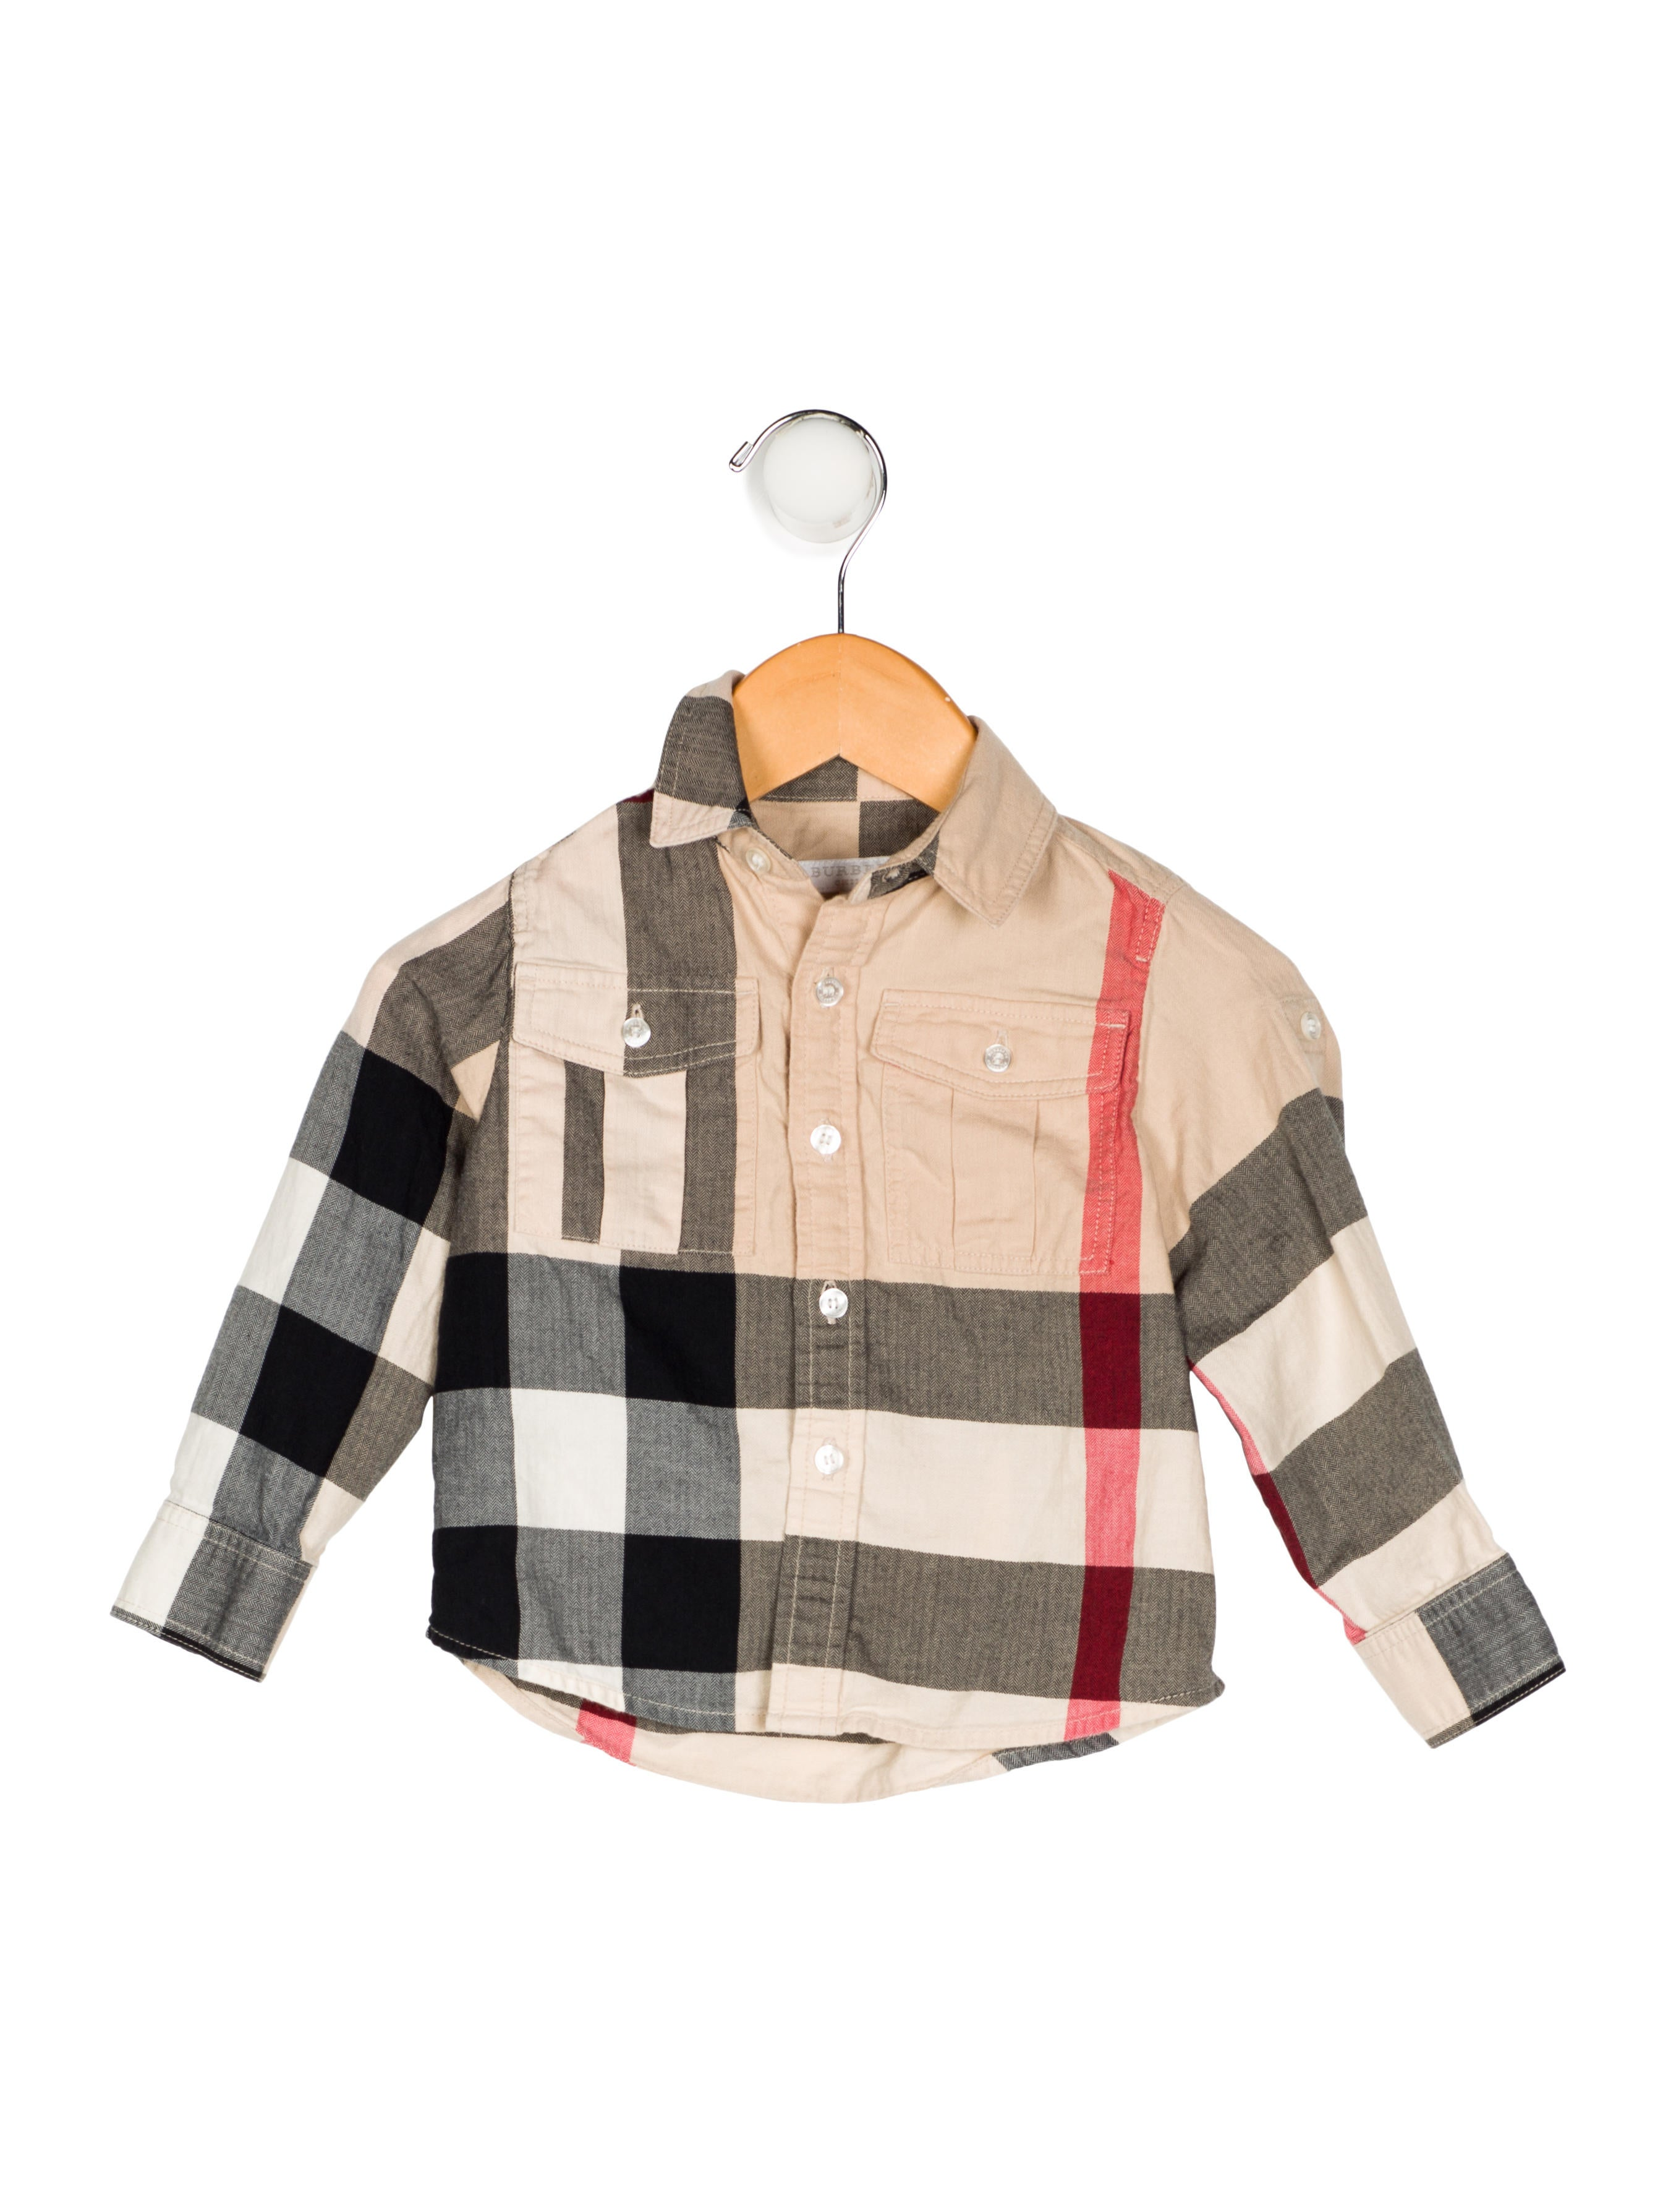 8163ec0d Burberry Boys' Exploded Check Print Shirt - Boys - BUR87330 | The ...